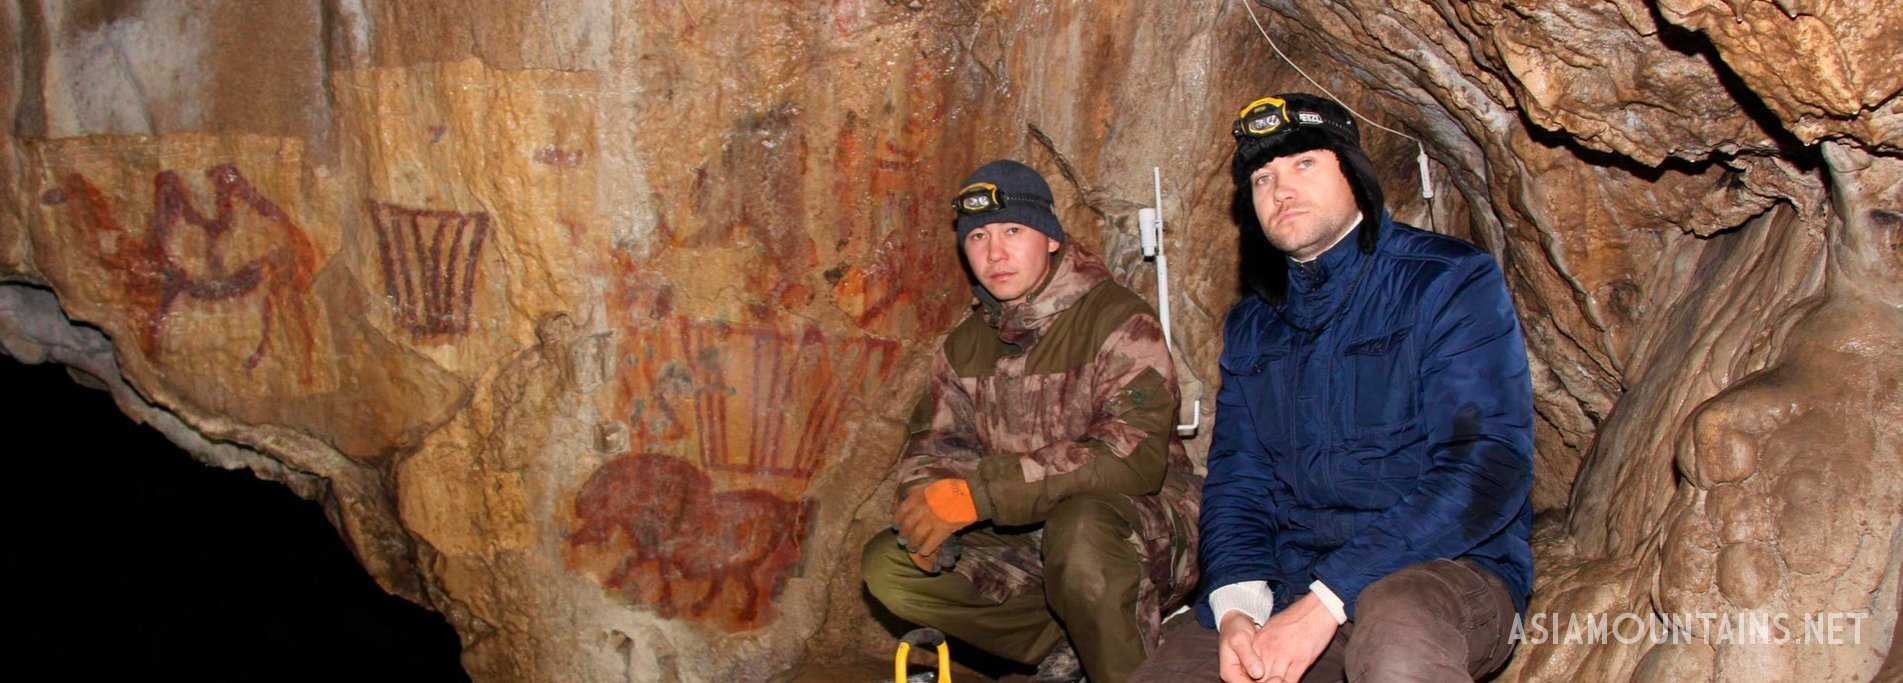 Lebanian caving expedition  - Results of the Lebanian caving expedition to the Tien Shan